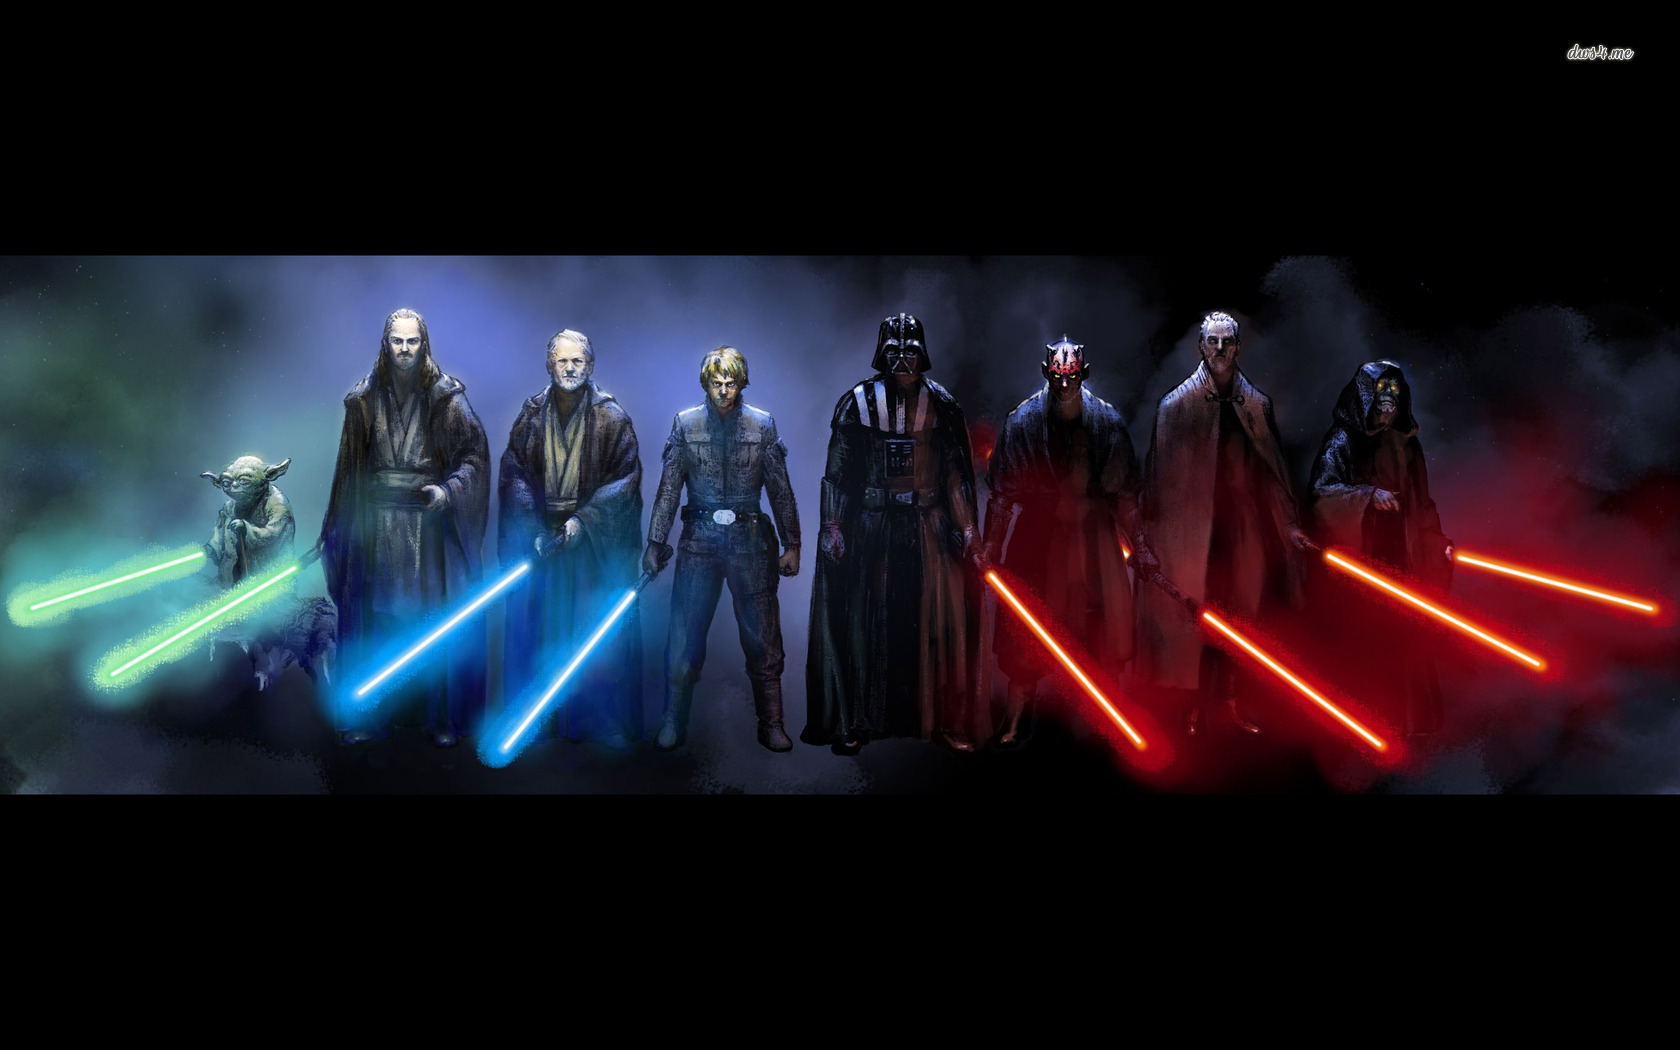 click star wars 7 hd wallpapers image and save image as click save 1680x1050